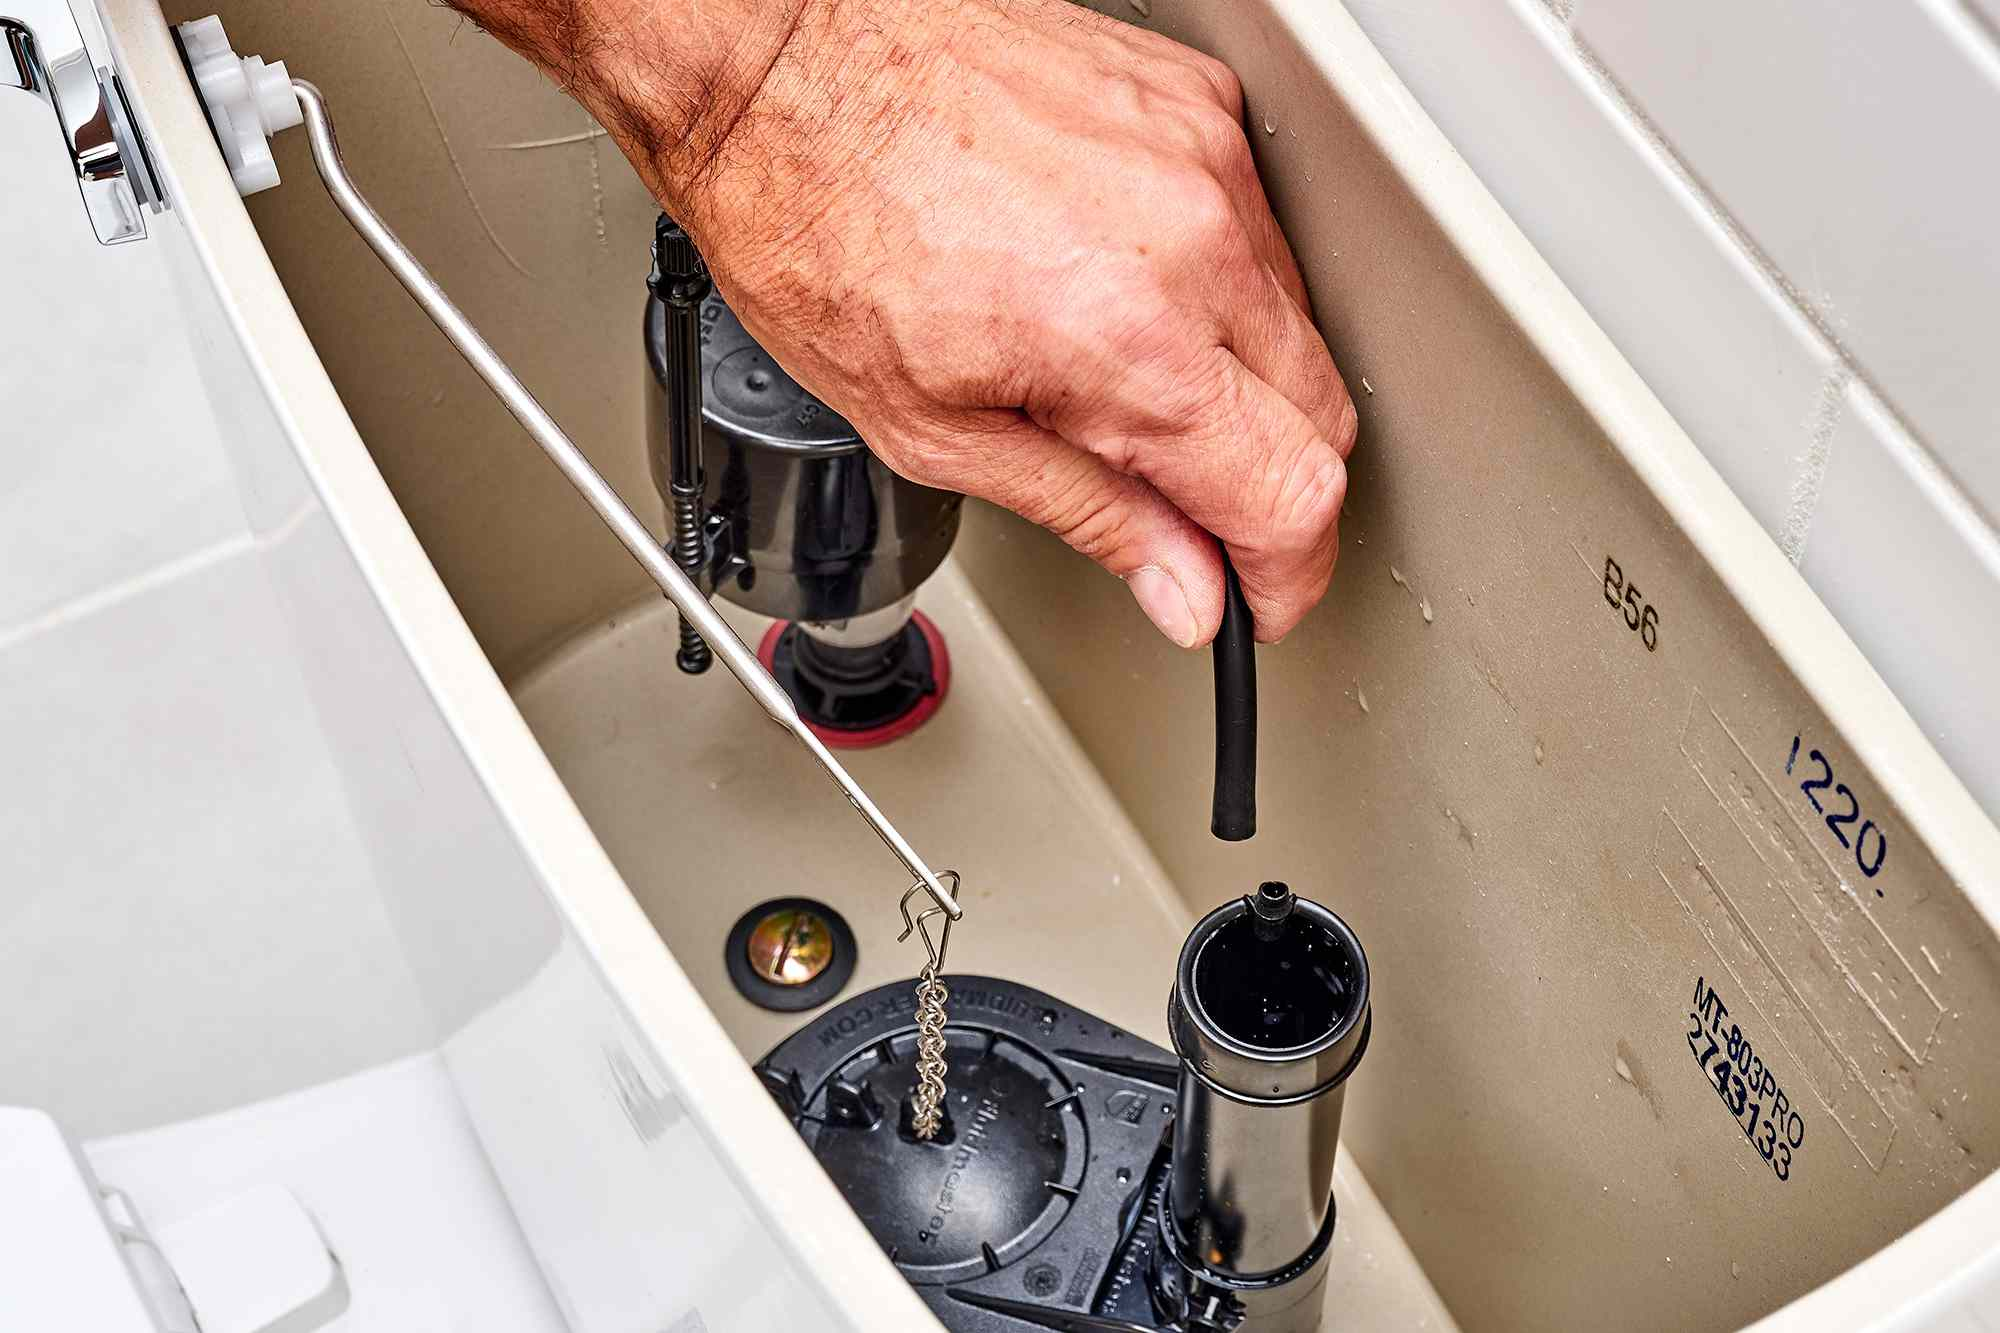 Rubber fill tubing connected onto top of fill valve in toilet tank